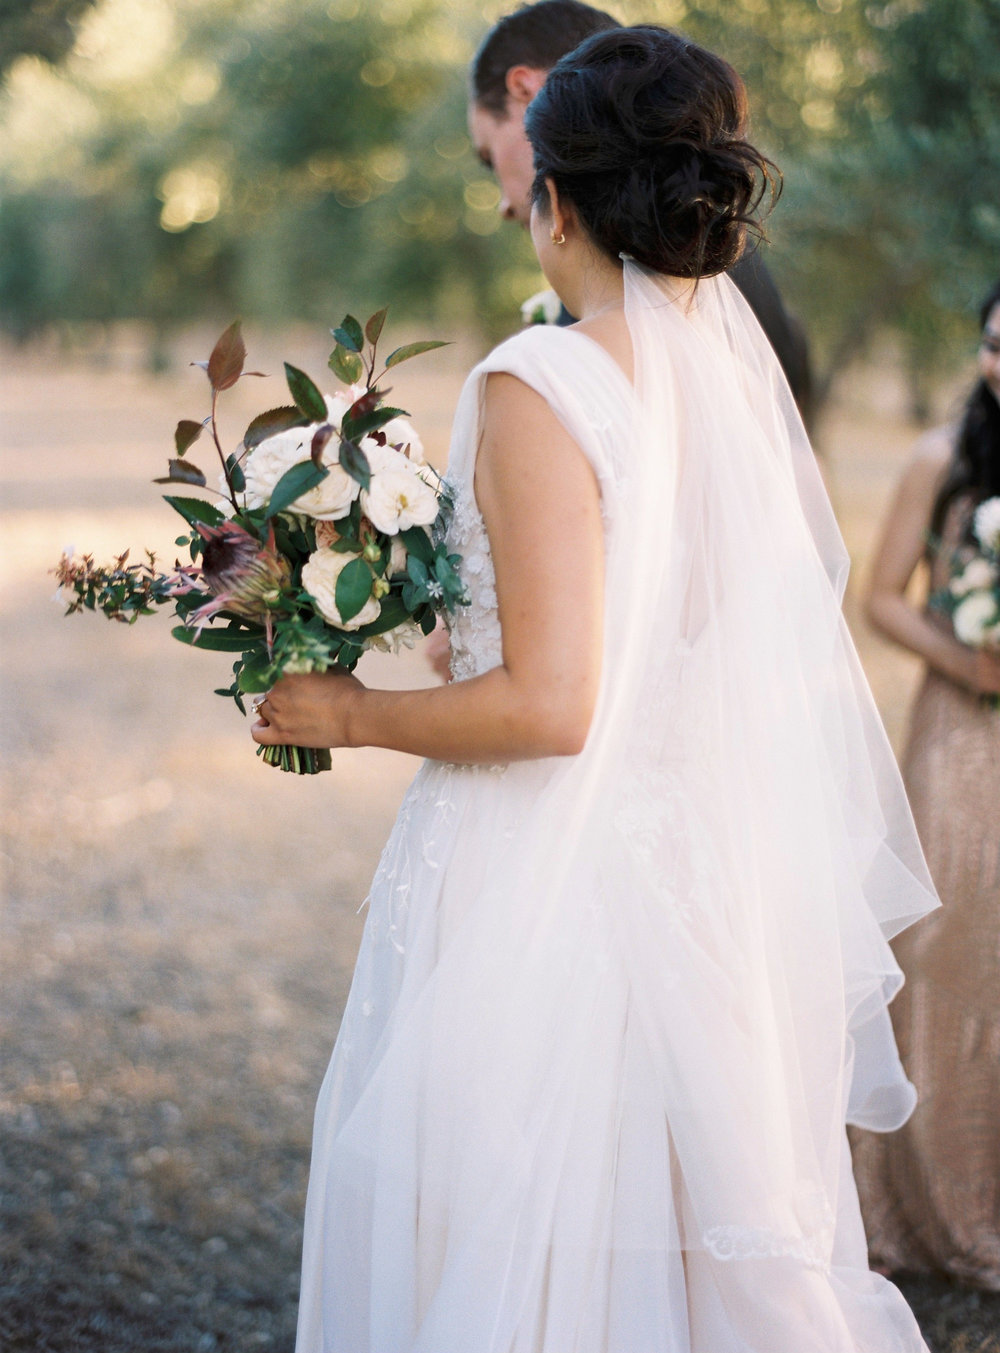 Katie Grant Photography (41 of 61).jpg